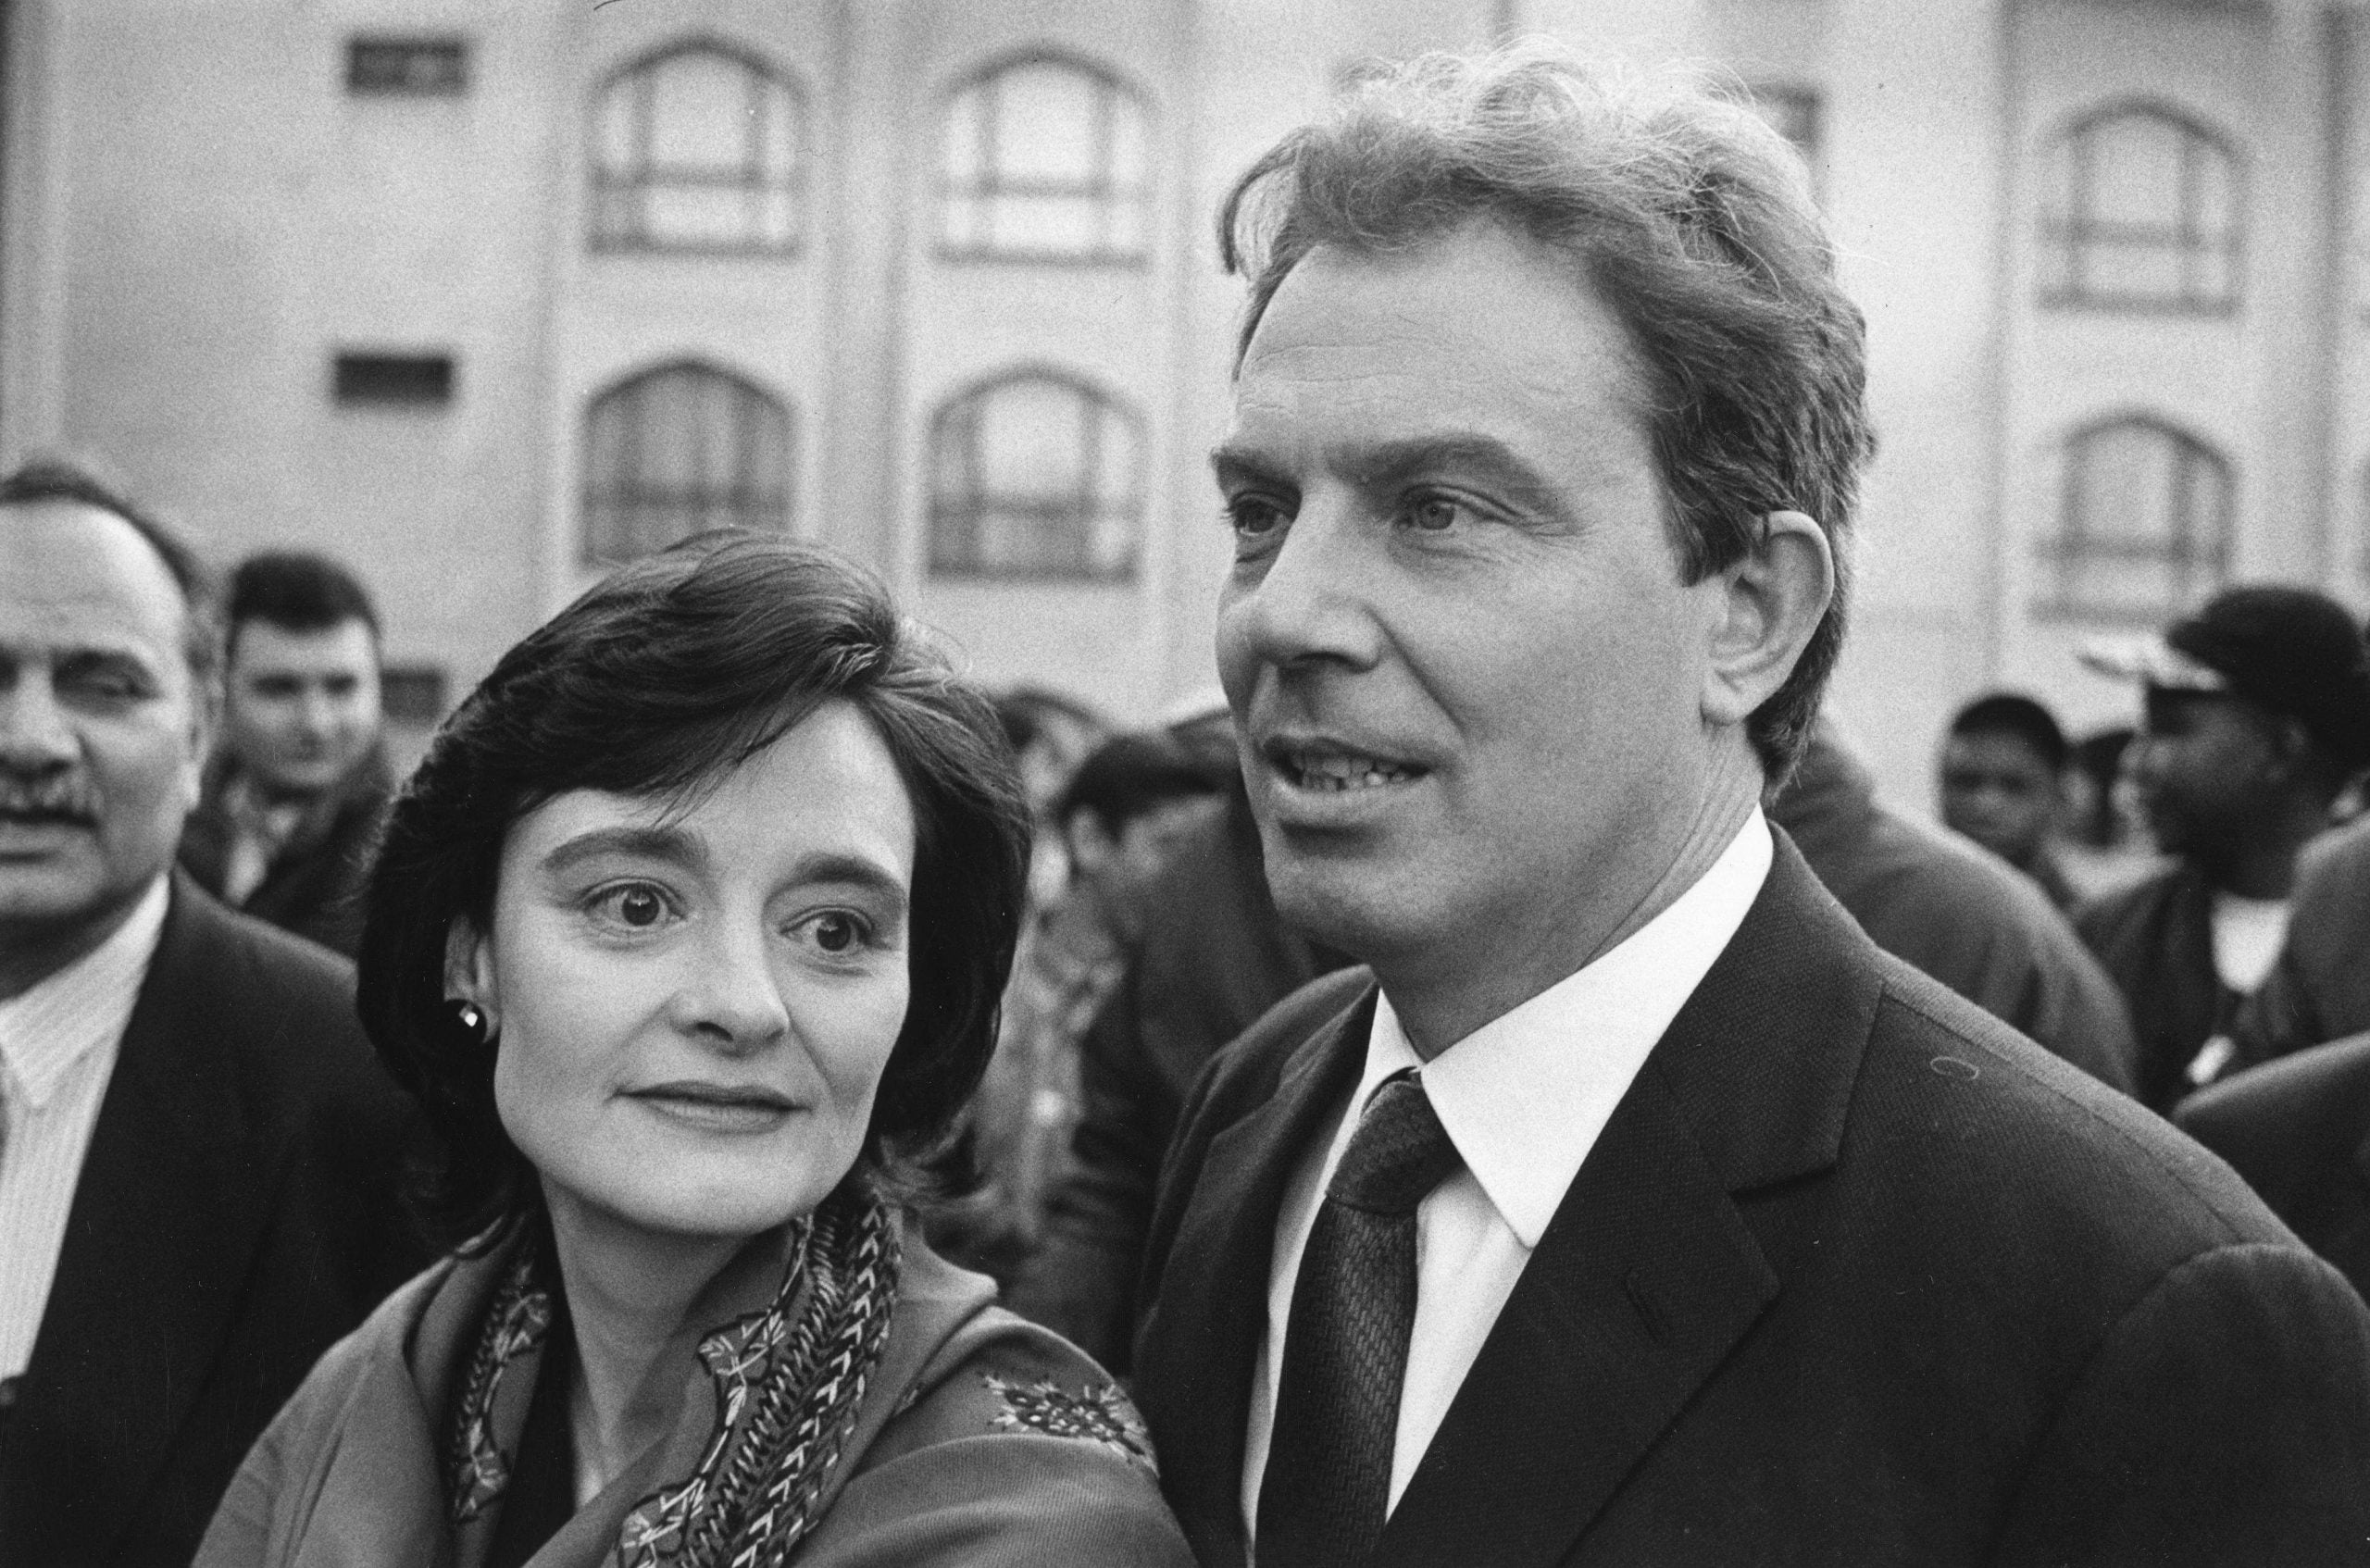 From the 1997 election archive: Interview with Tony Blair